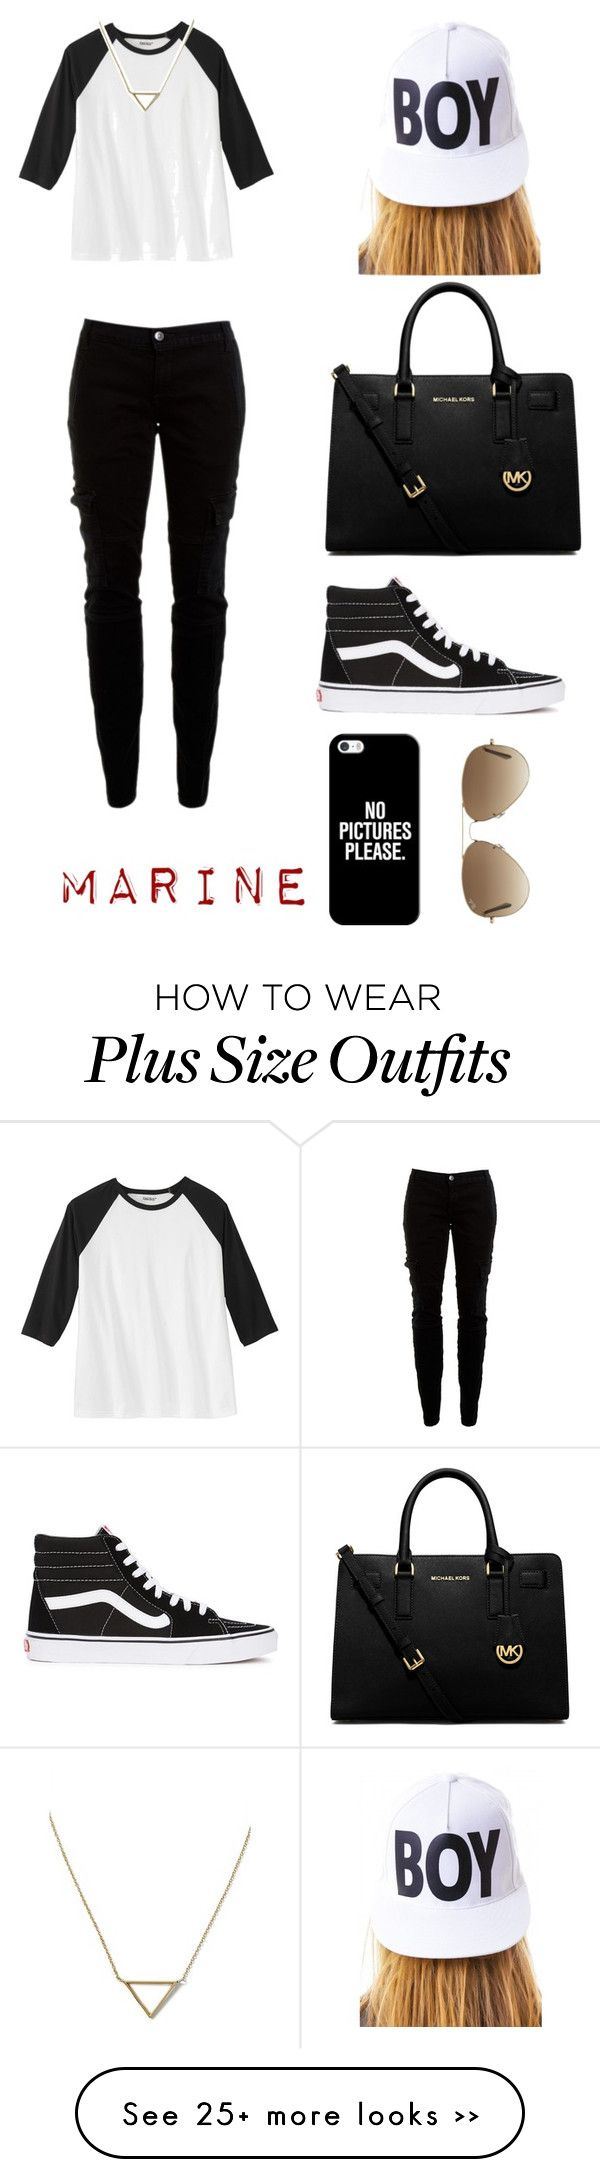 """""""Sans titre #63"""" by nailup on Polyvore featuring Joie, MICHAEL Michael Kors, Vans, Casetify, Ray-Ban, BOY London and Banana Republic"""